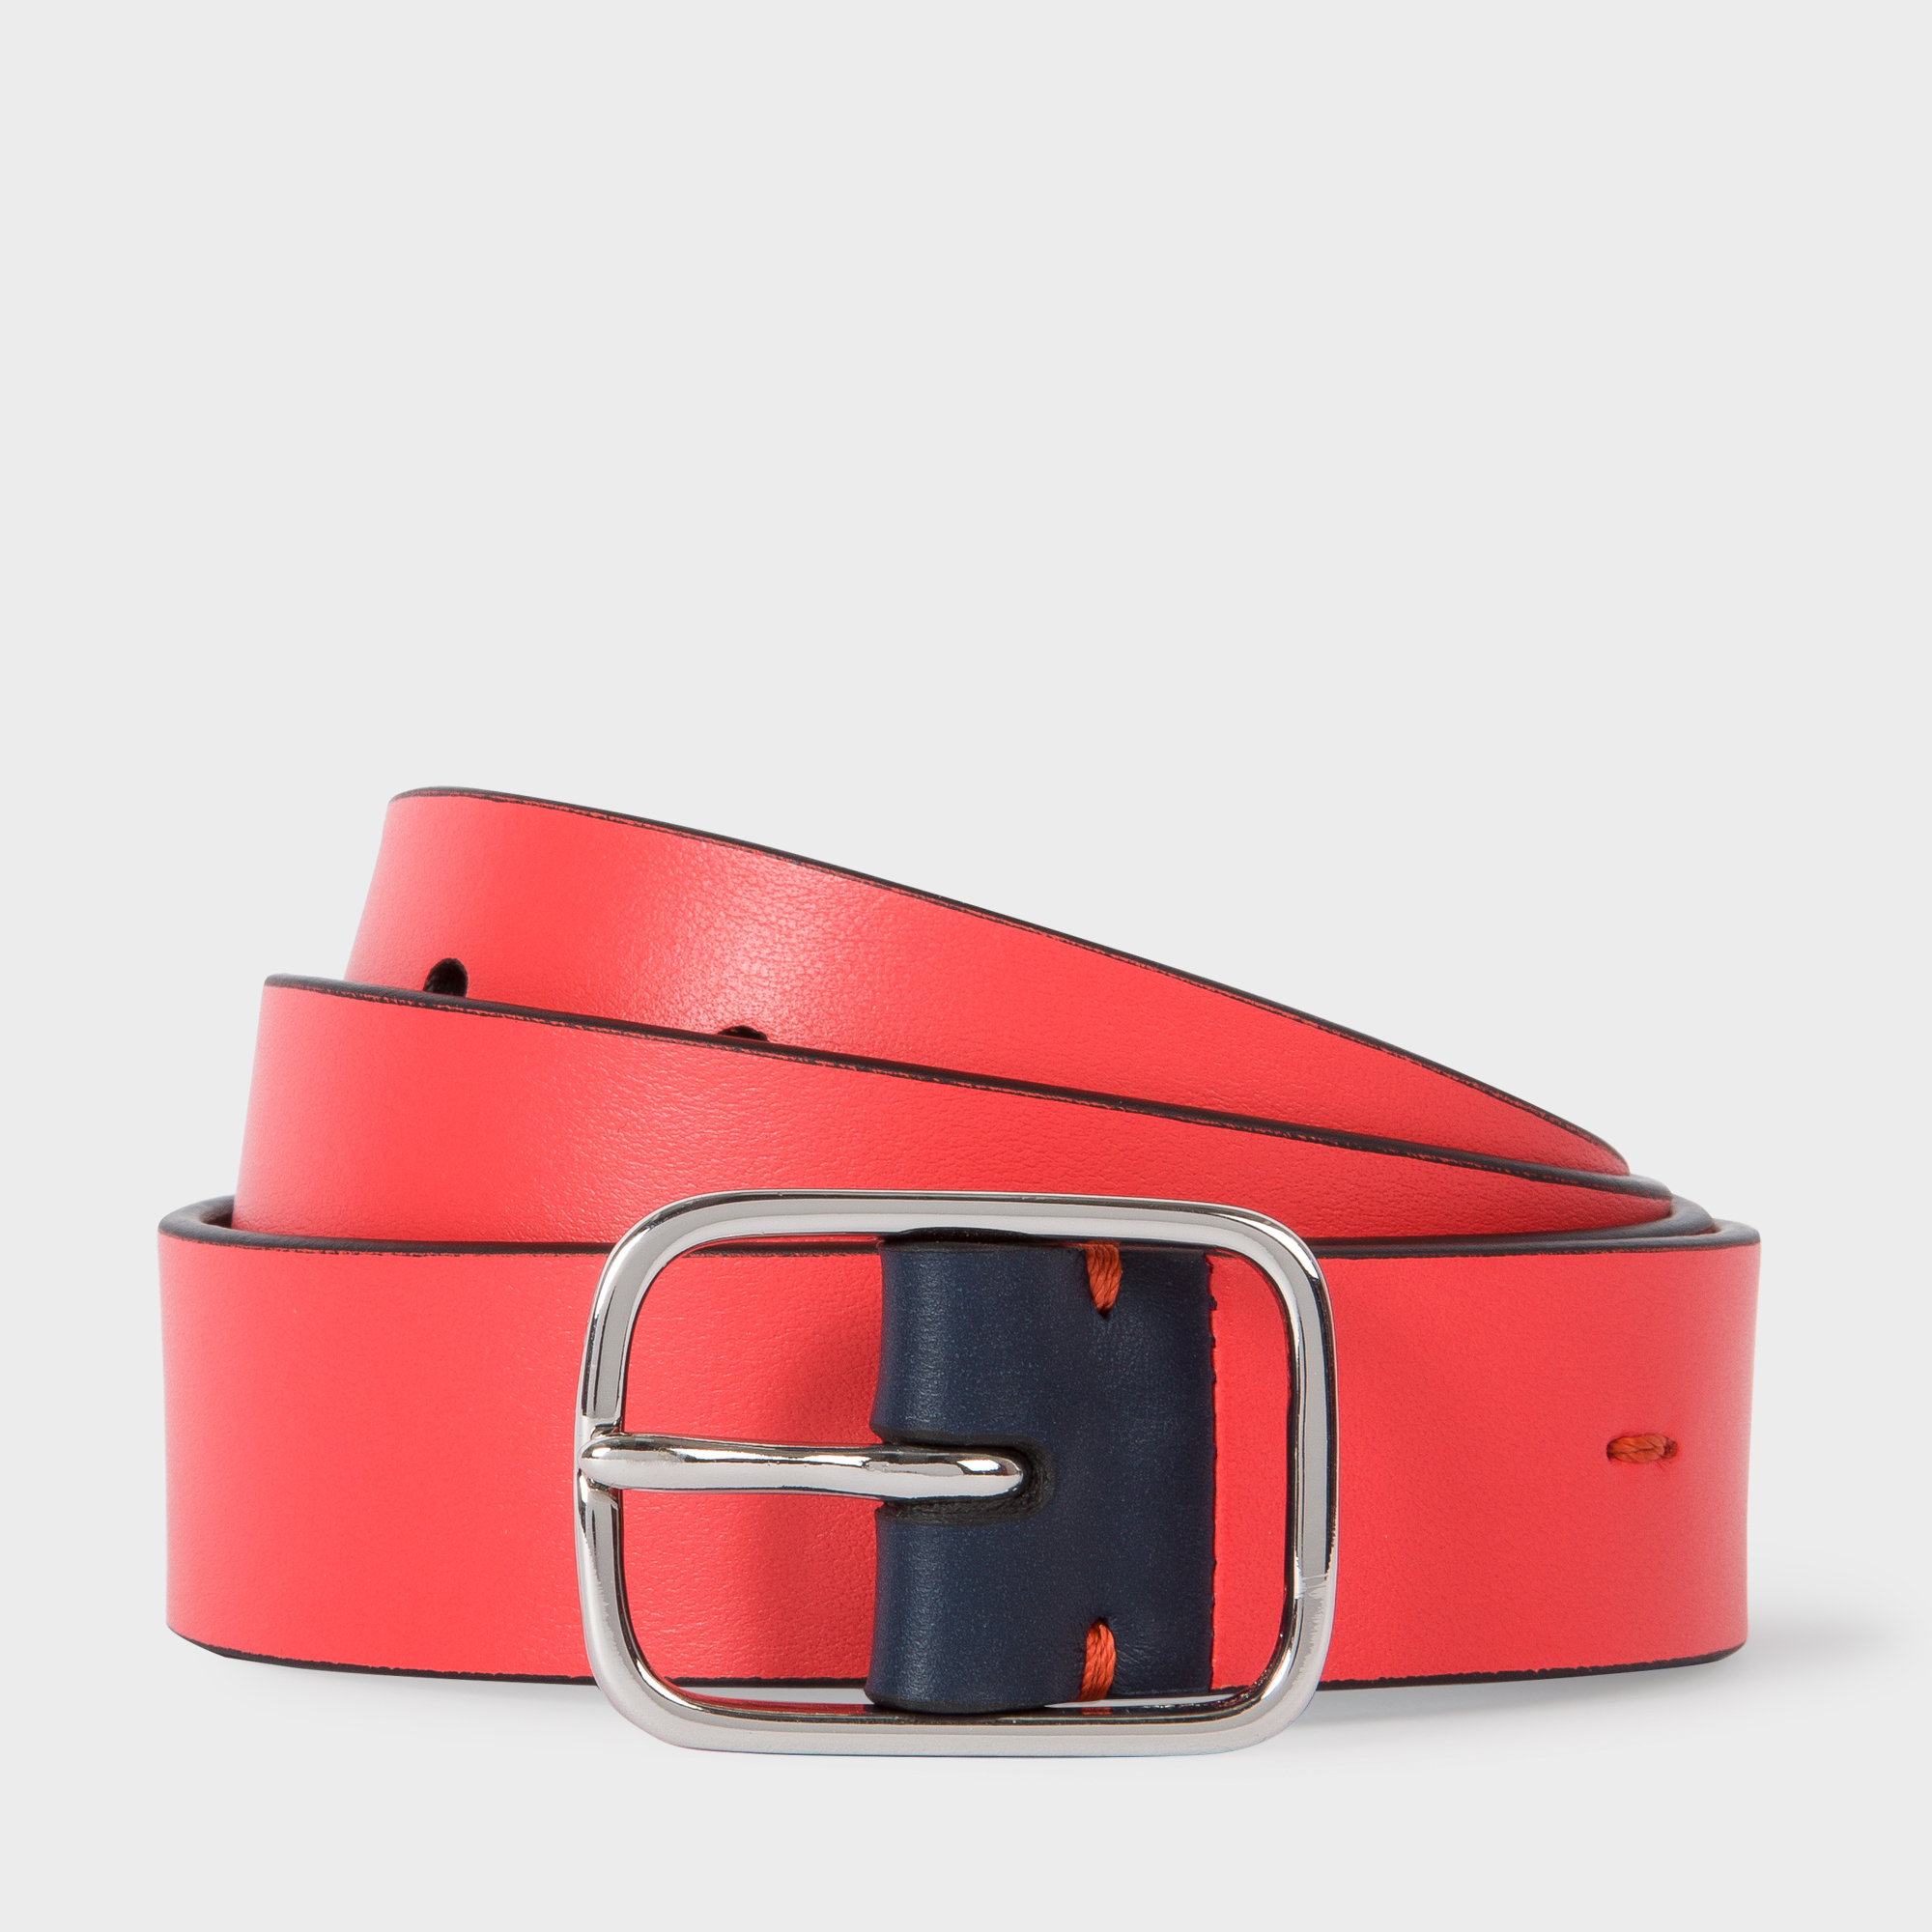 Paul Smith Men's Coral Leather Belt With Contrast End